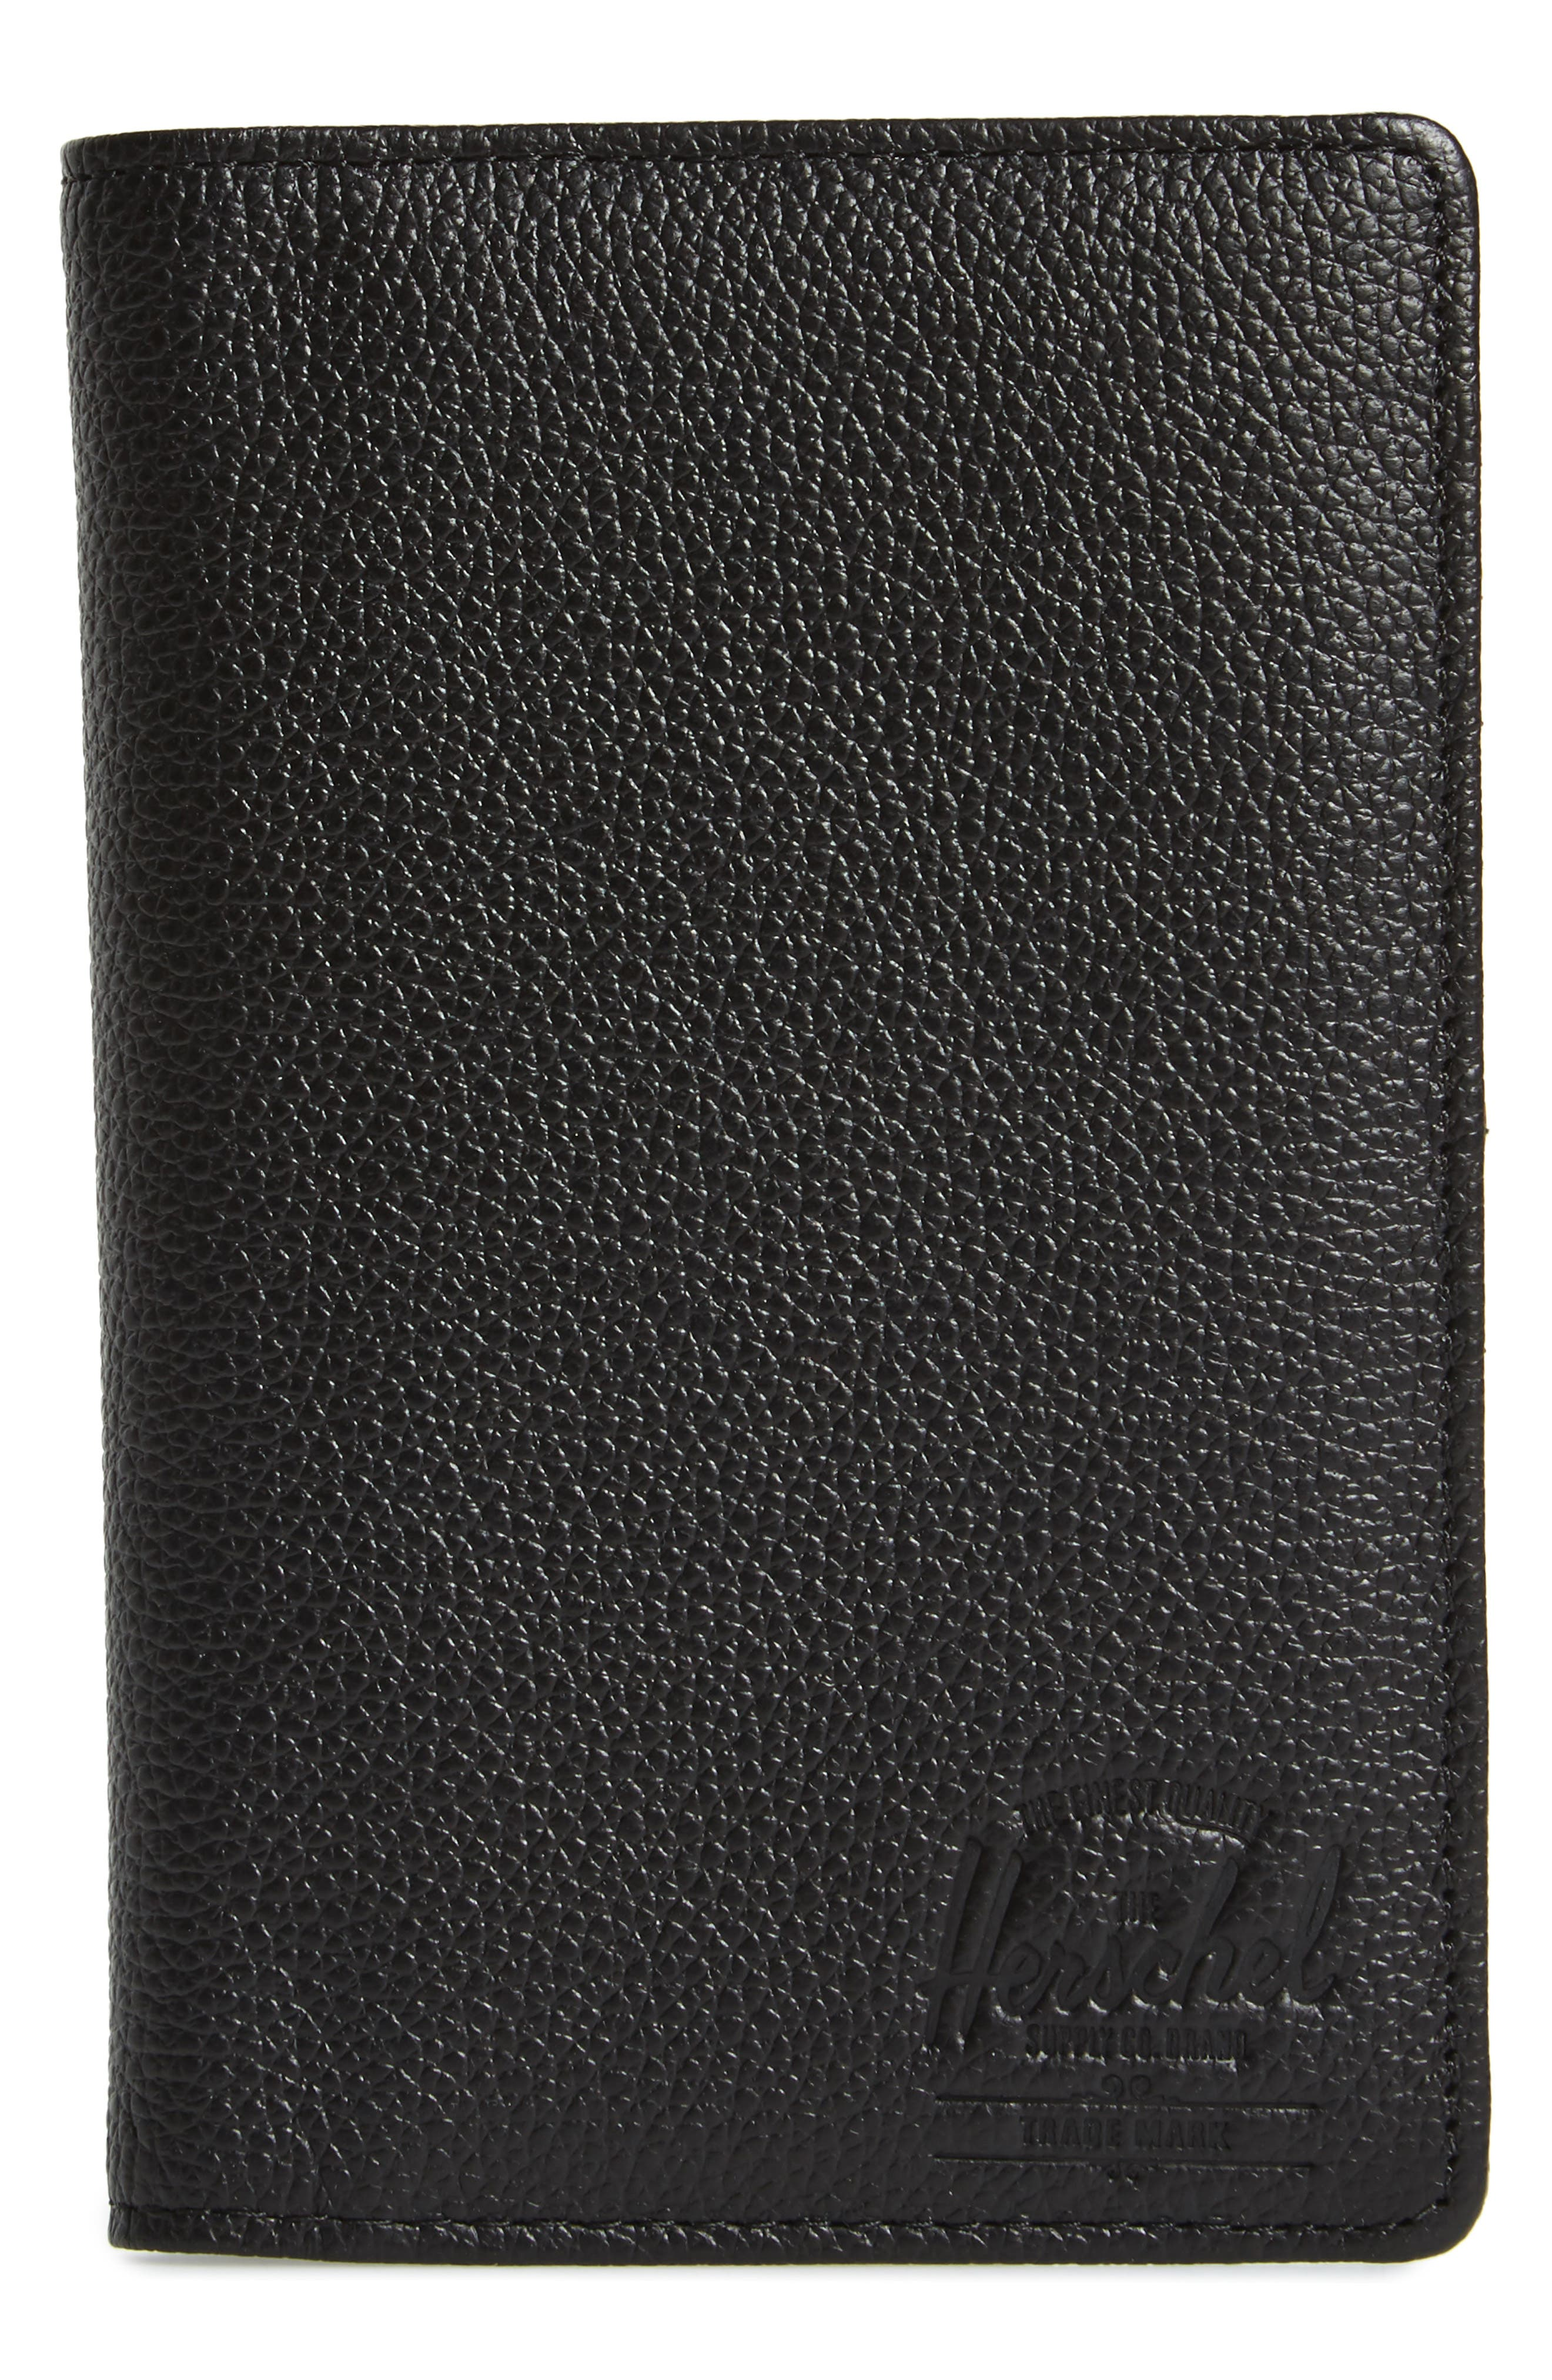 Tile Search Slim Vertical Leather Wallet,                         Main,                         color, Black Pebbled Leather